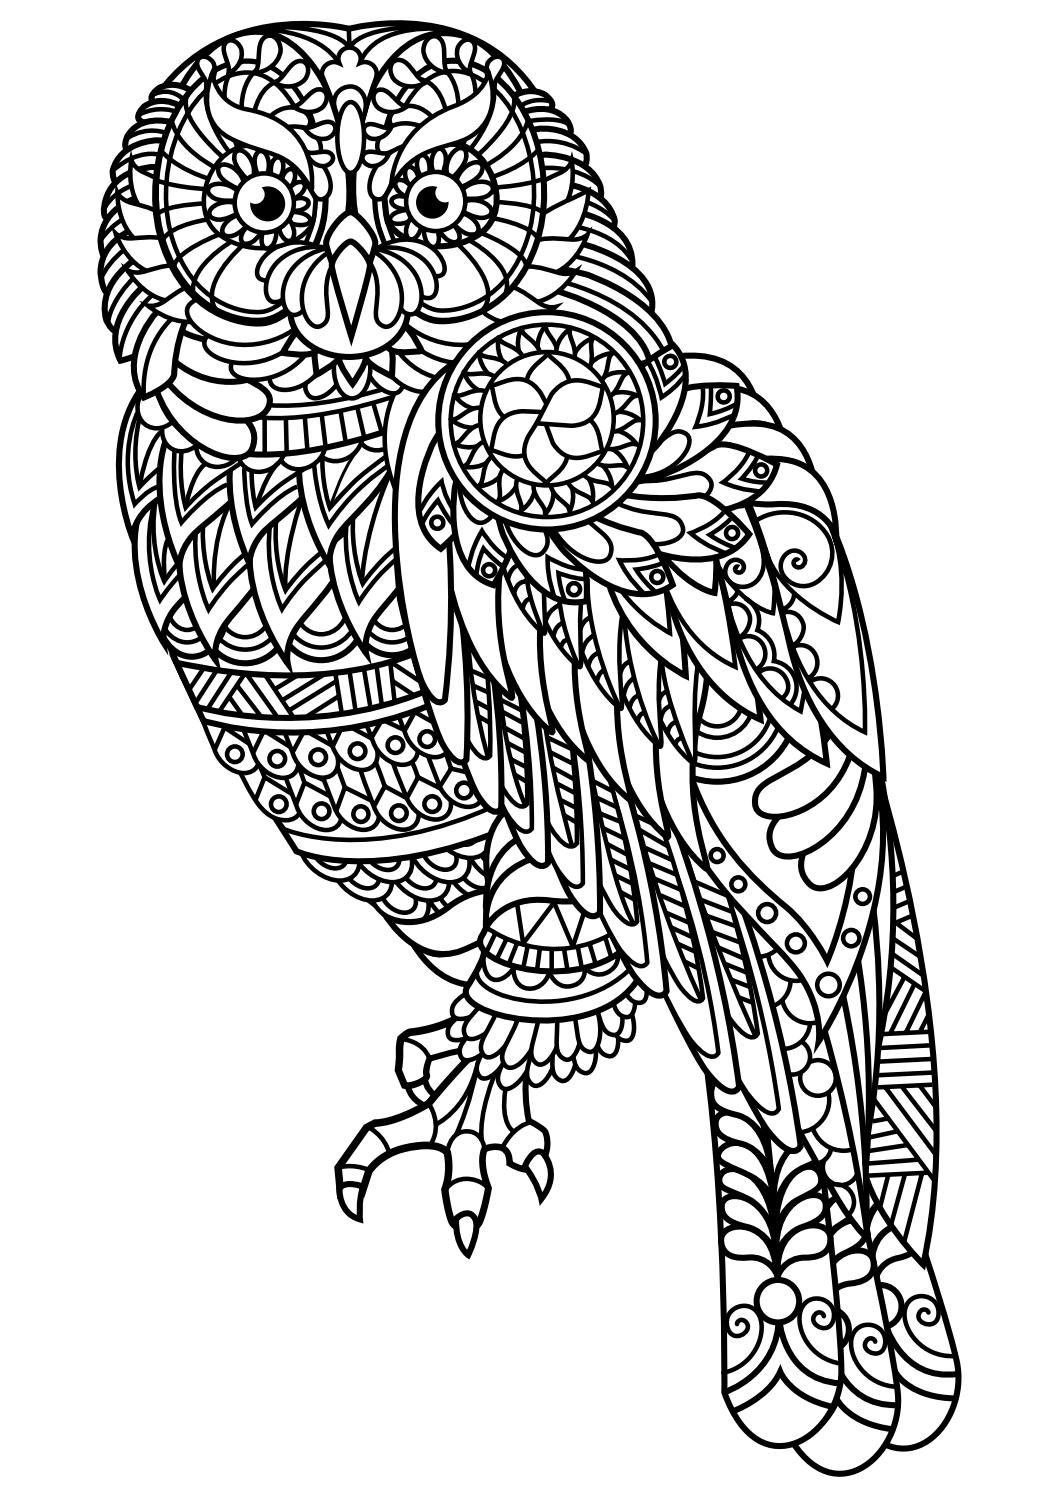 Animal coloring pages pdf (With images) | Bird coloring ... | printable colouring pages for adults animals